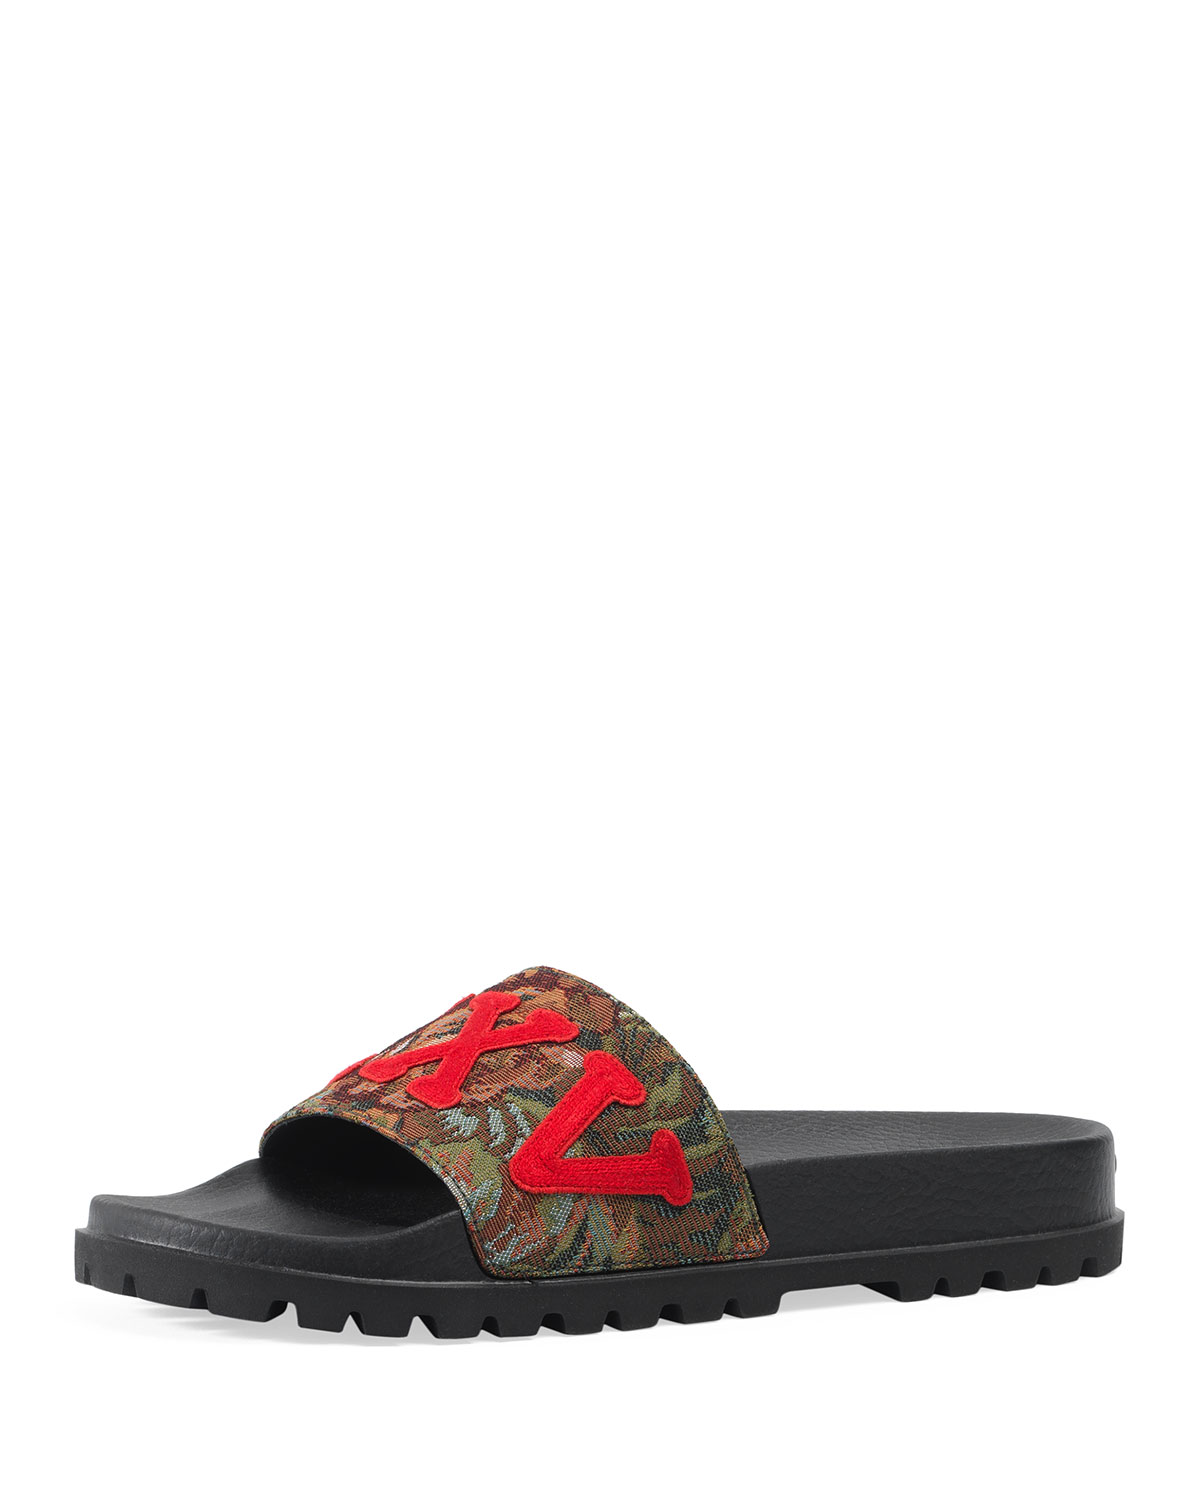 eb35eef900a014 Gucci Pursuit Treck Floral Brocade Slide Sandal